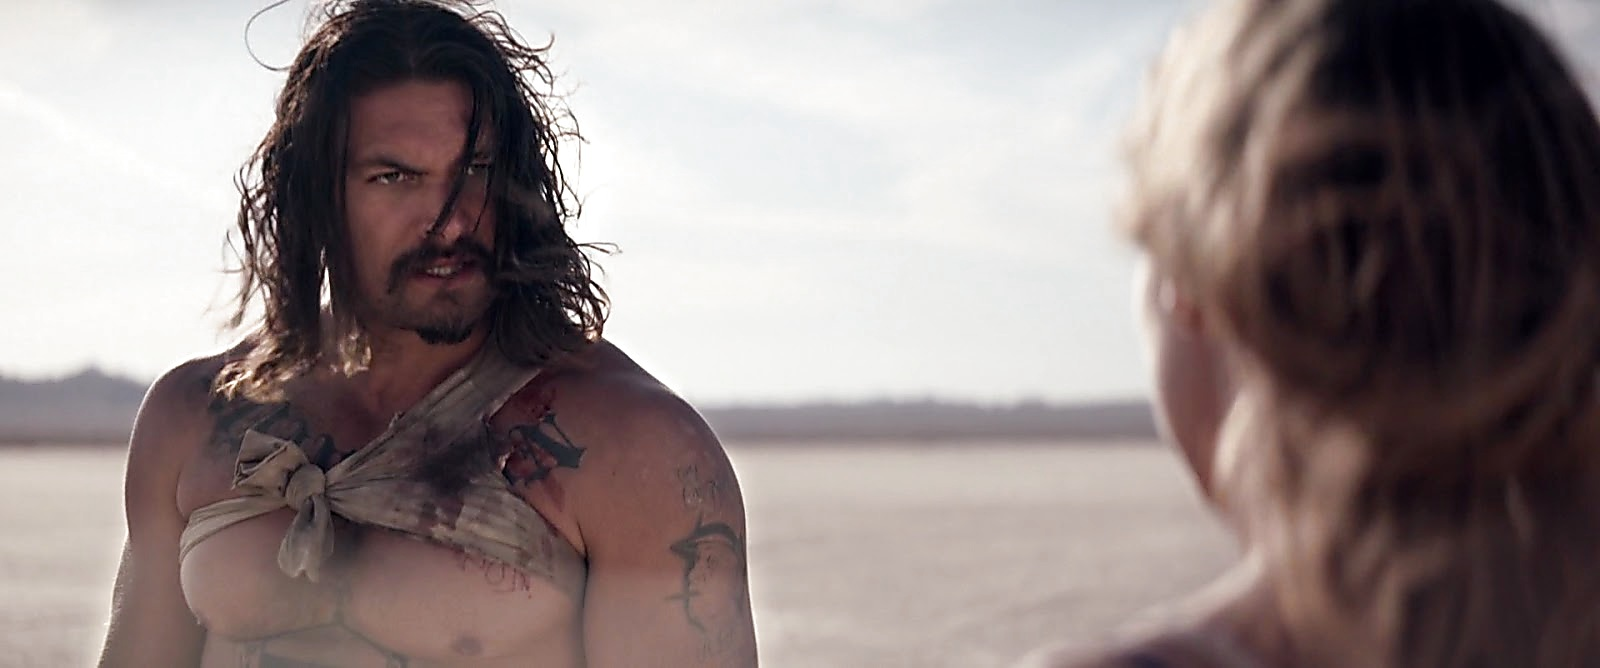 Jason Momoa The Bad Batch 2017 06 23 1jpg